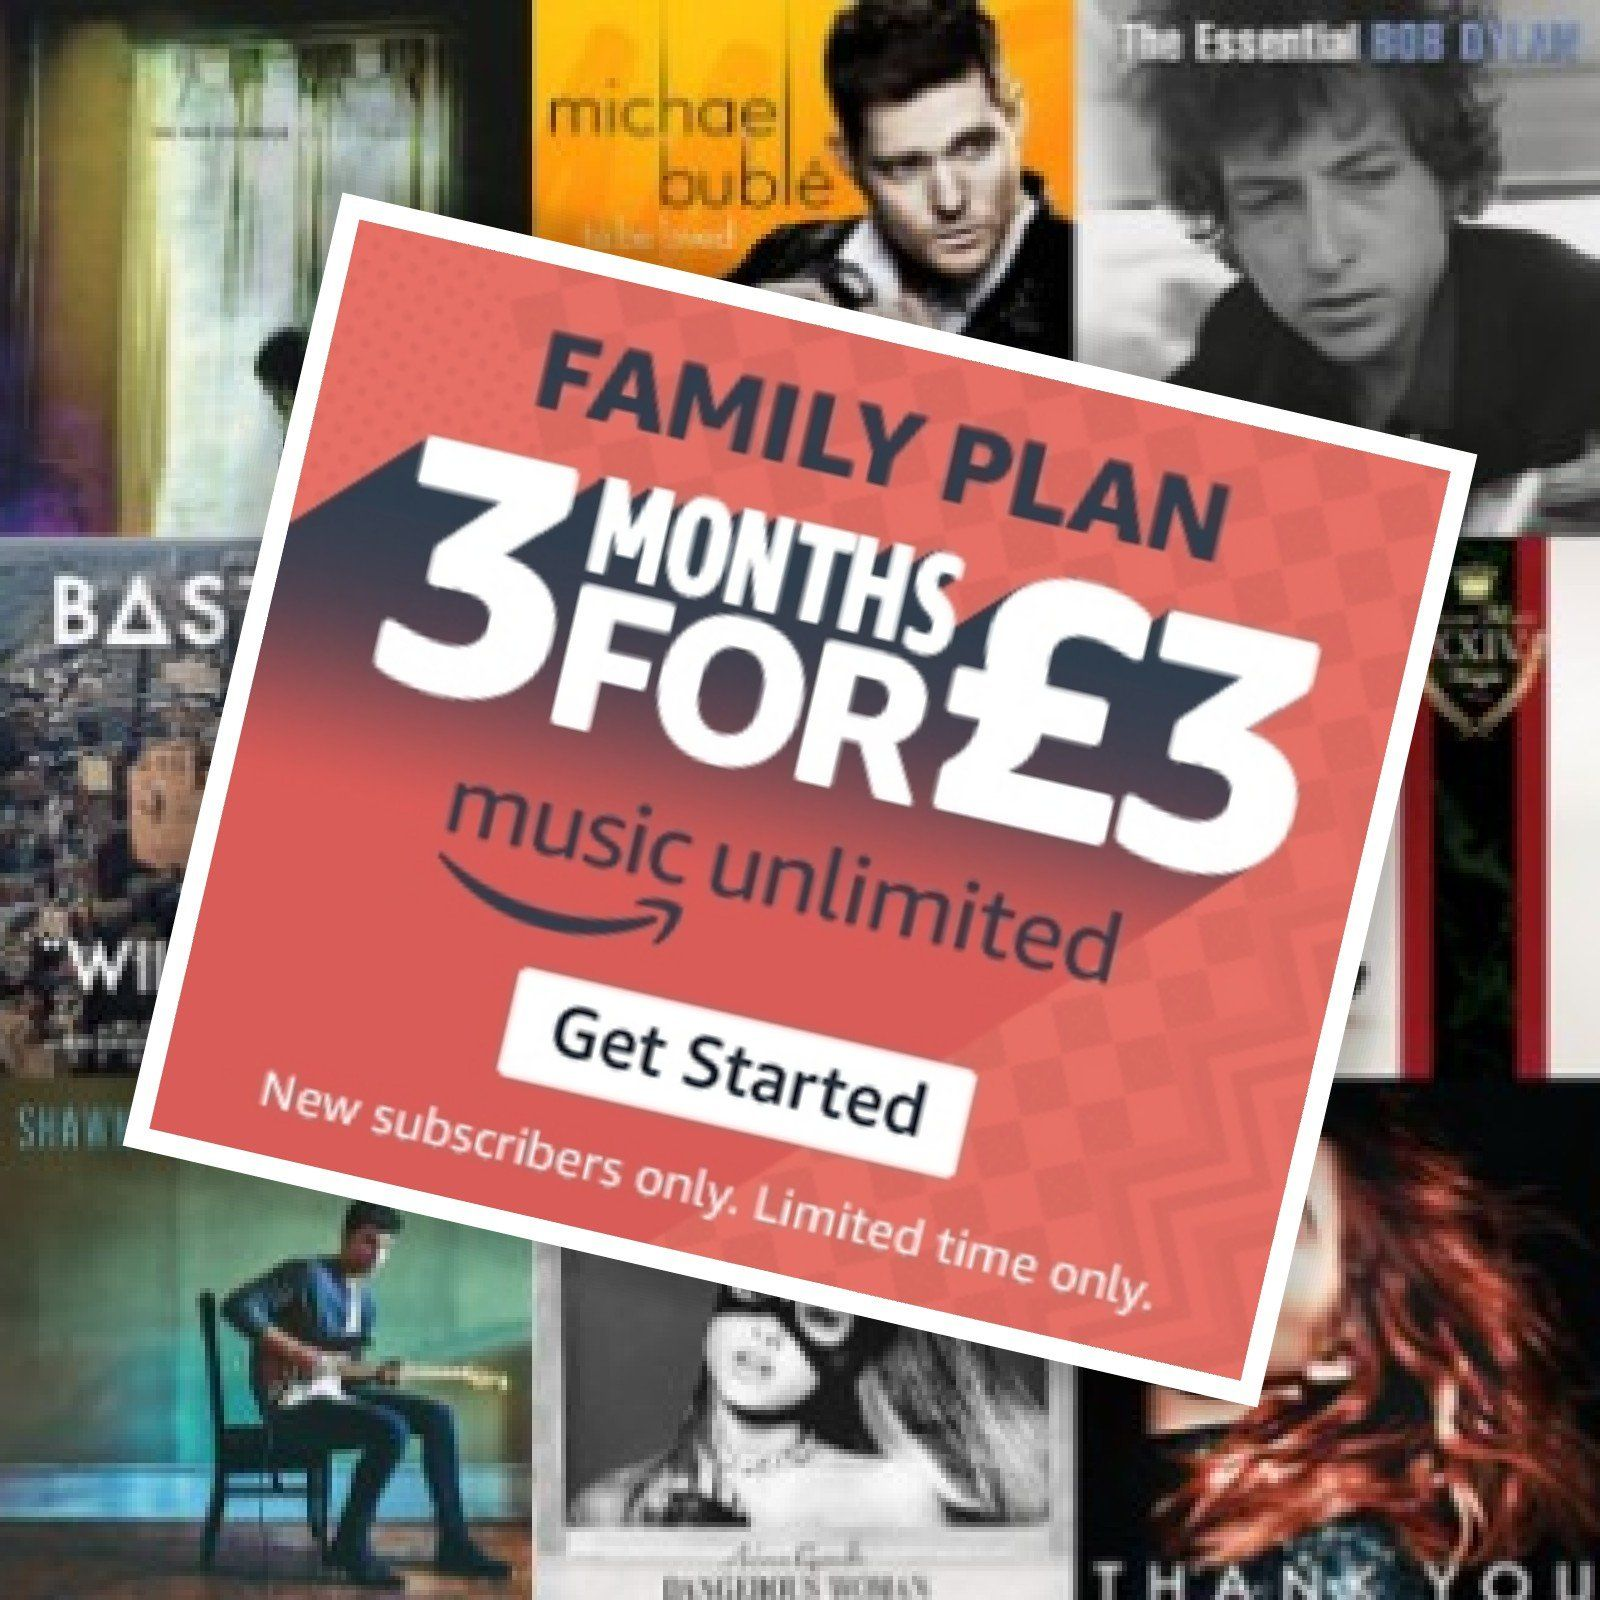 Try The New Amazon Music Unlimited Family Plan With 3 Months For 3